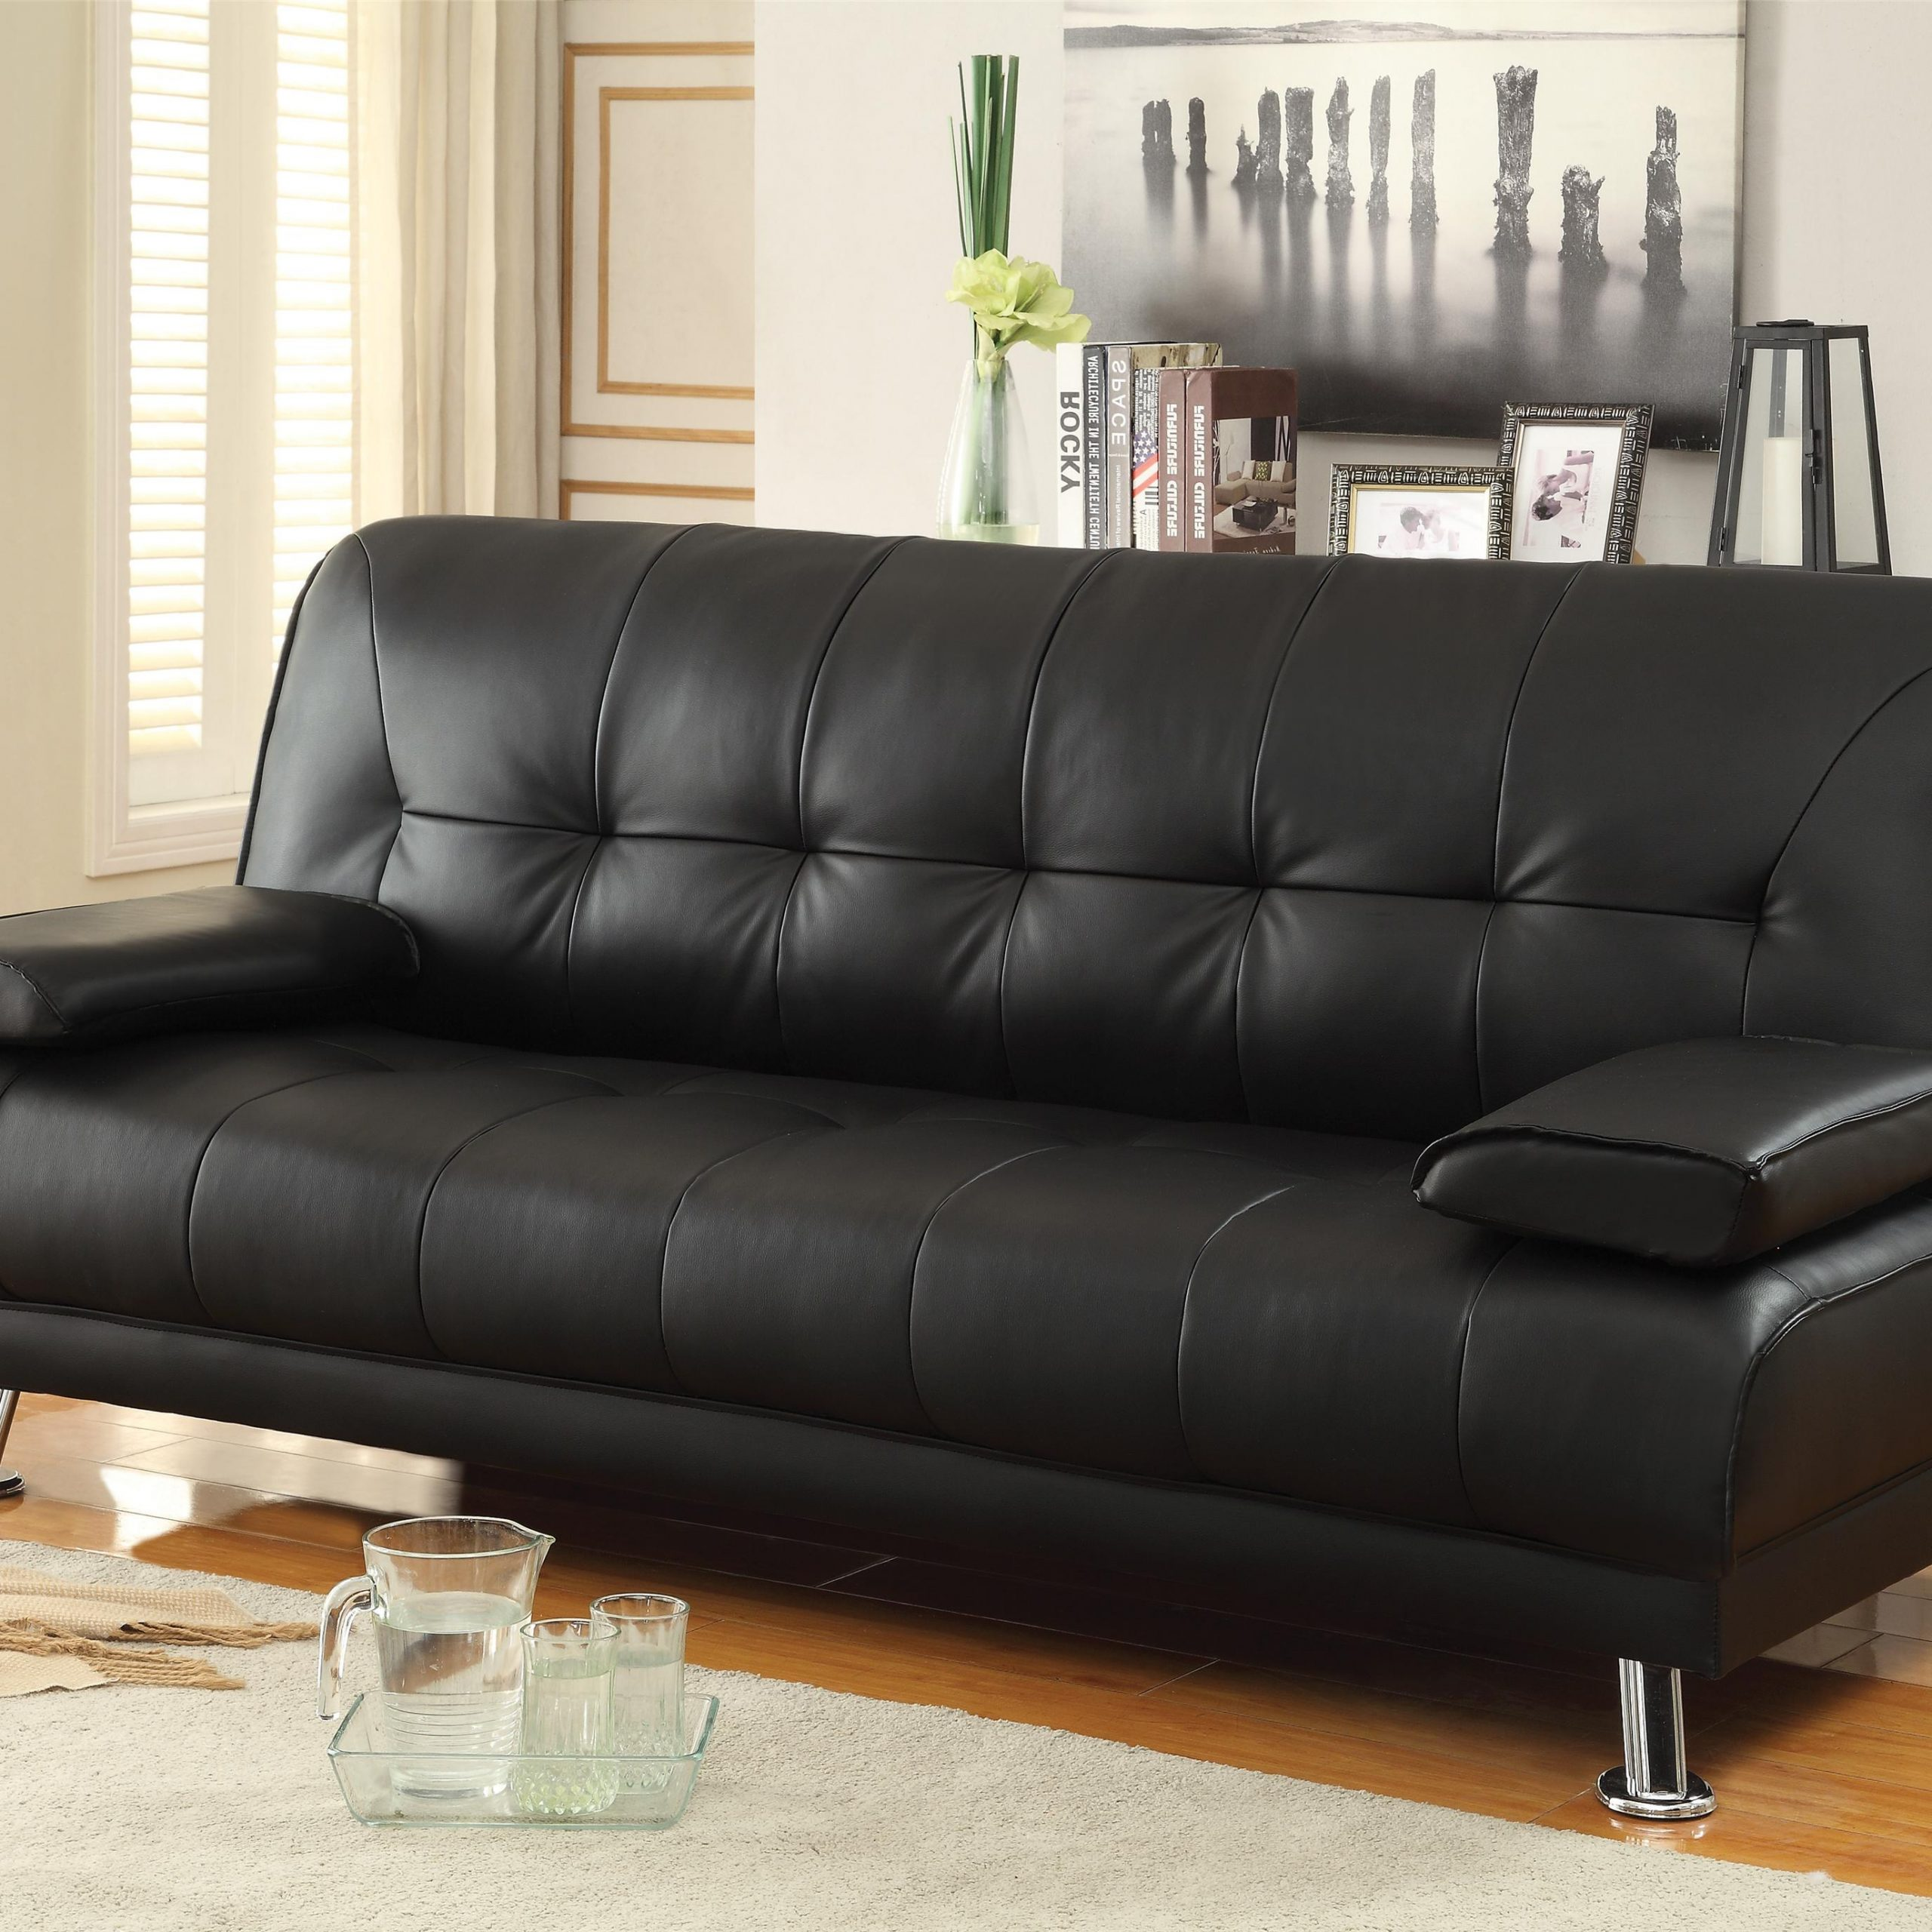 Fashionable Celine Sectional Futon Sofas With Storage Reclining Couch With Regard To Sofa Beds And Futons Faux Leather Convertible Sofa Bed (View 7 of 20)